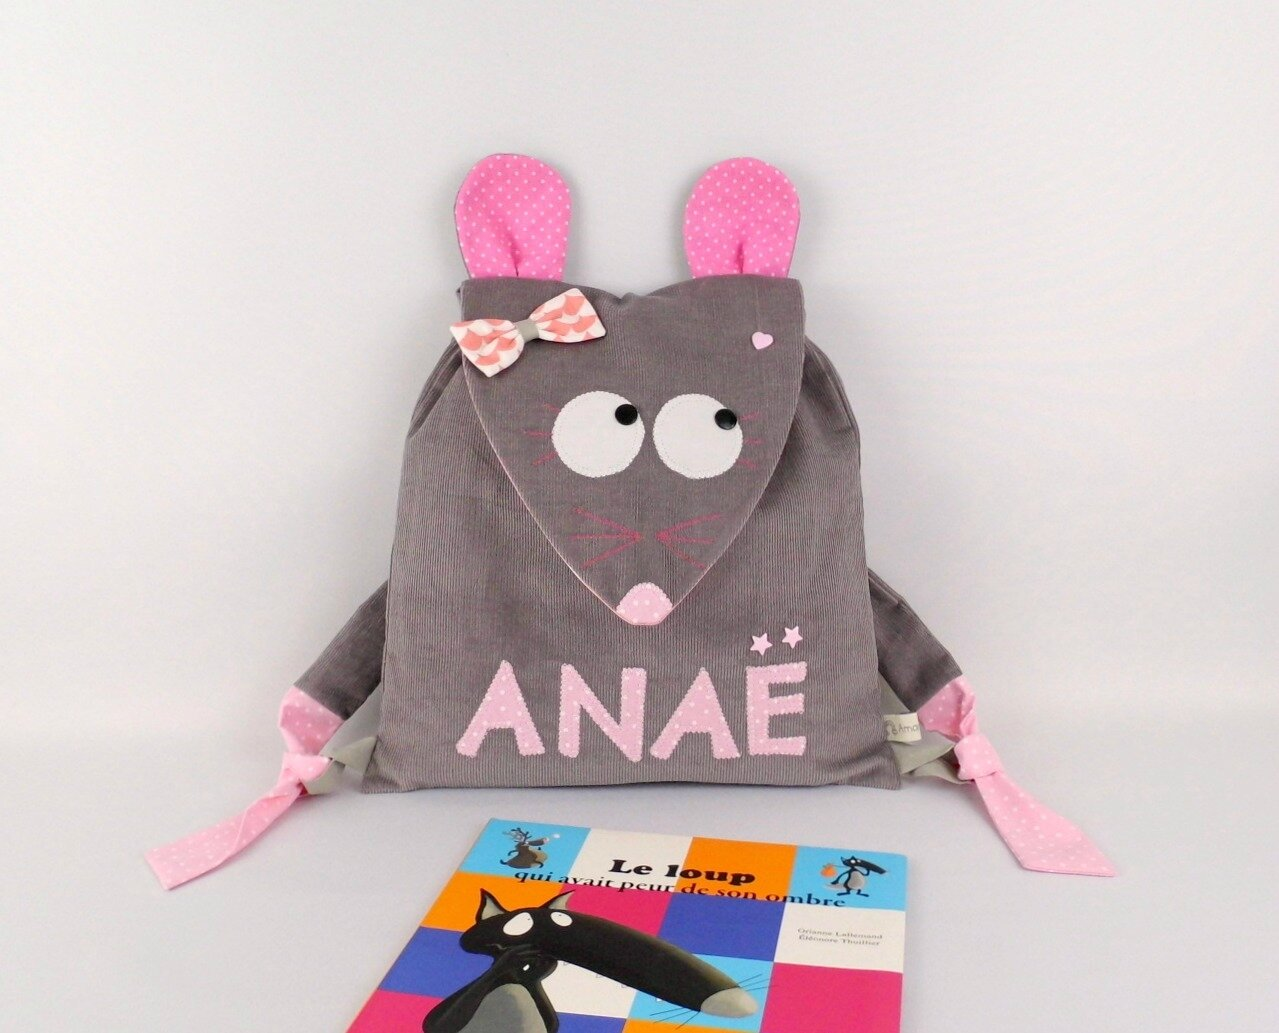 Sac souris crèche personnalisable prénom Anaë gris rose sac à dos fille école maternelle amanite rose baby backpack personalized name grey pink girl baby gift